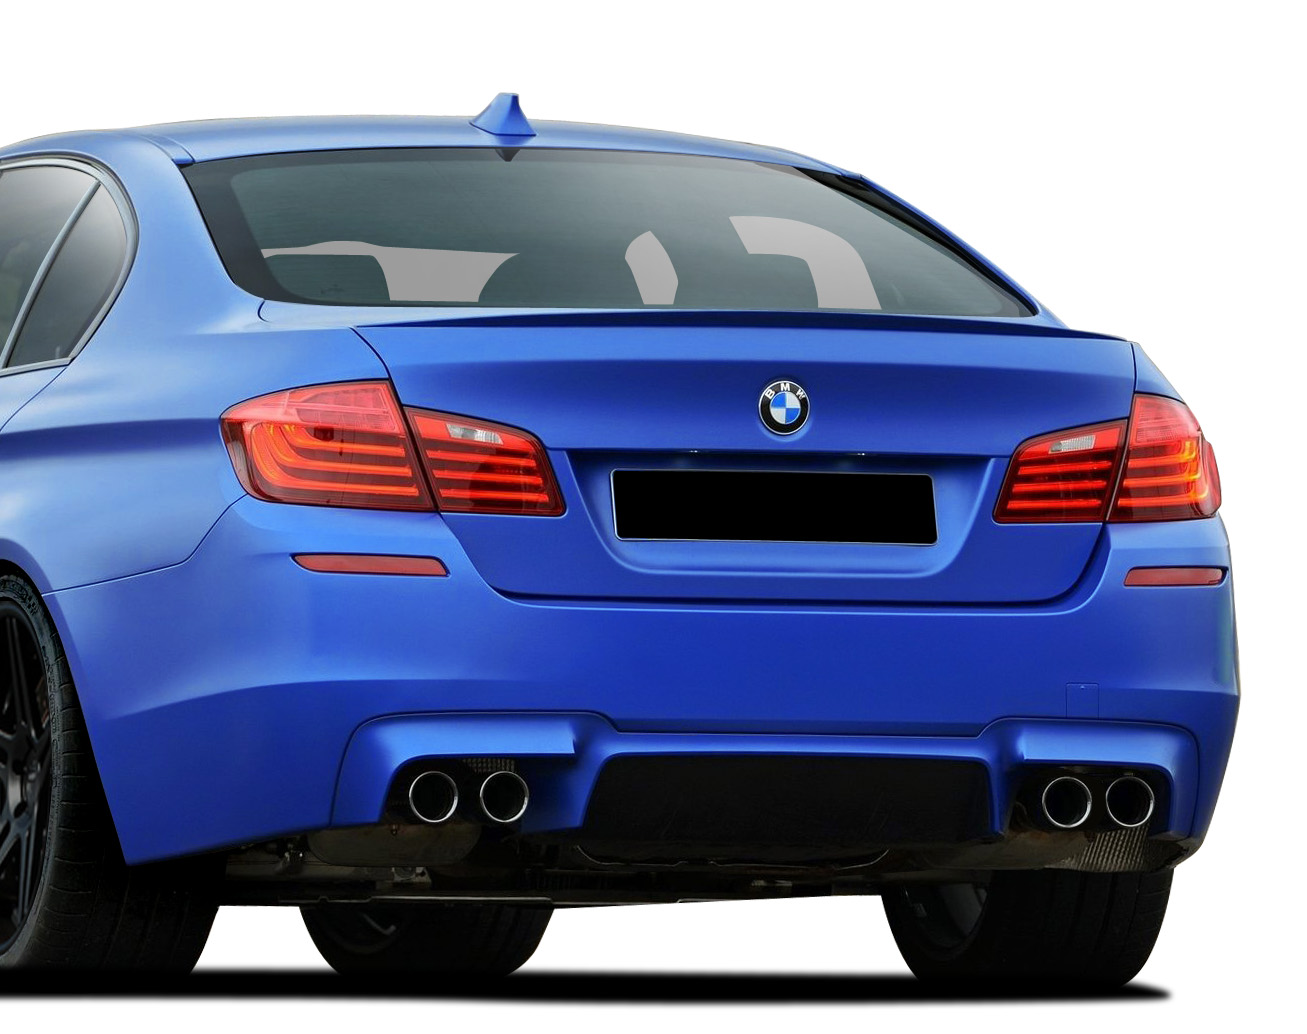 2015 BMW 5 Series 4DR - Polypropylene Rear Bumper Bodykit - BMW 5 Series F10 4DR Vaero M5 Look Rear Bumper Cover ( without PDC ) - 1 Piece